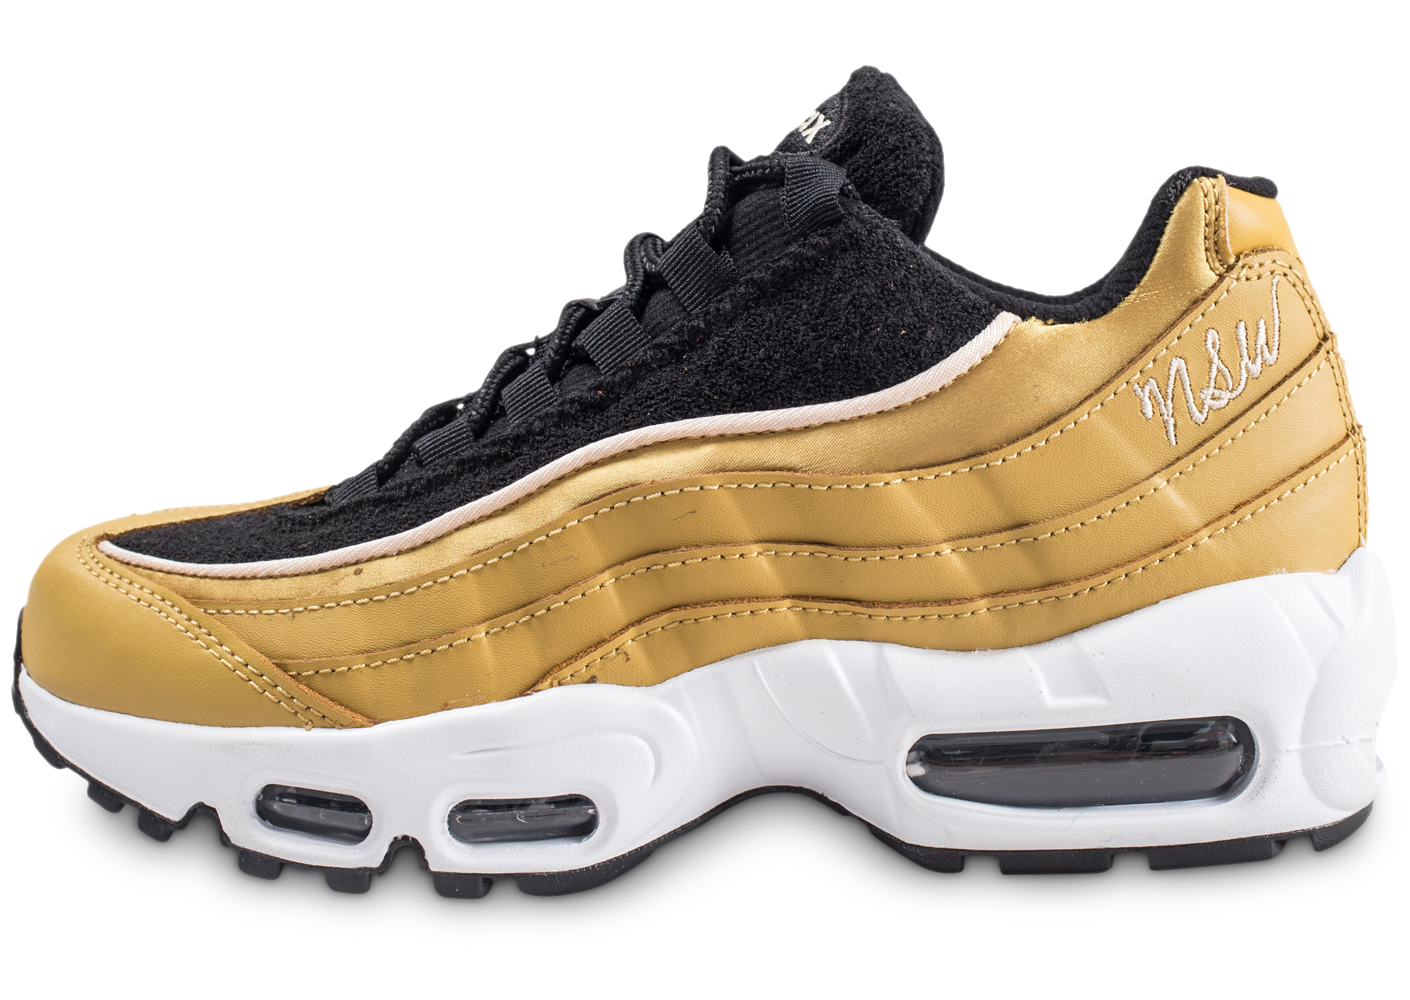 new style 5843f d86e0 Nike air max 95 lx or femme baskets streetwear